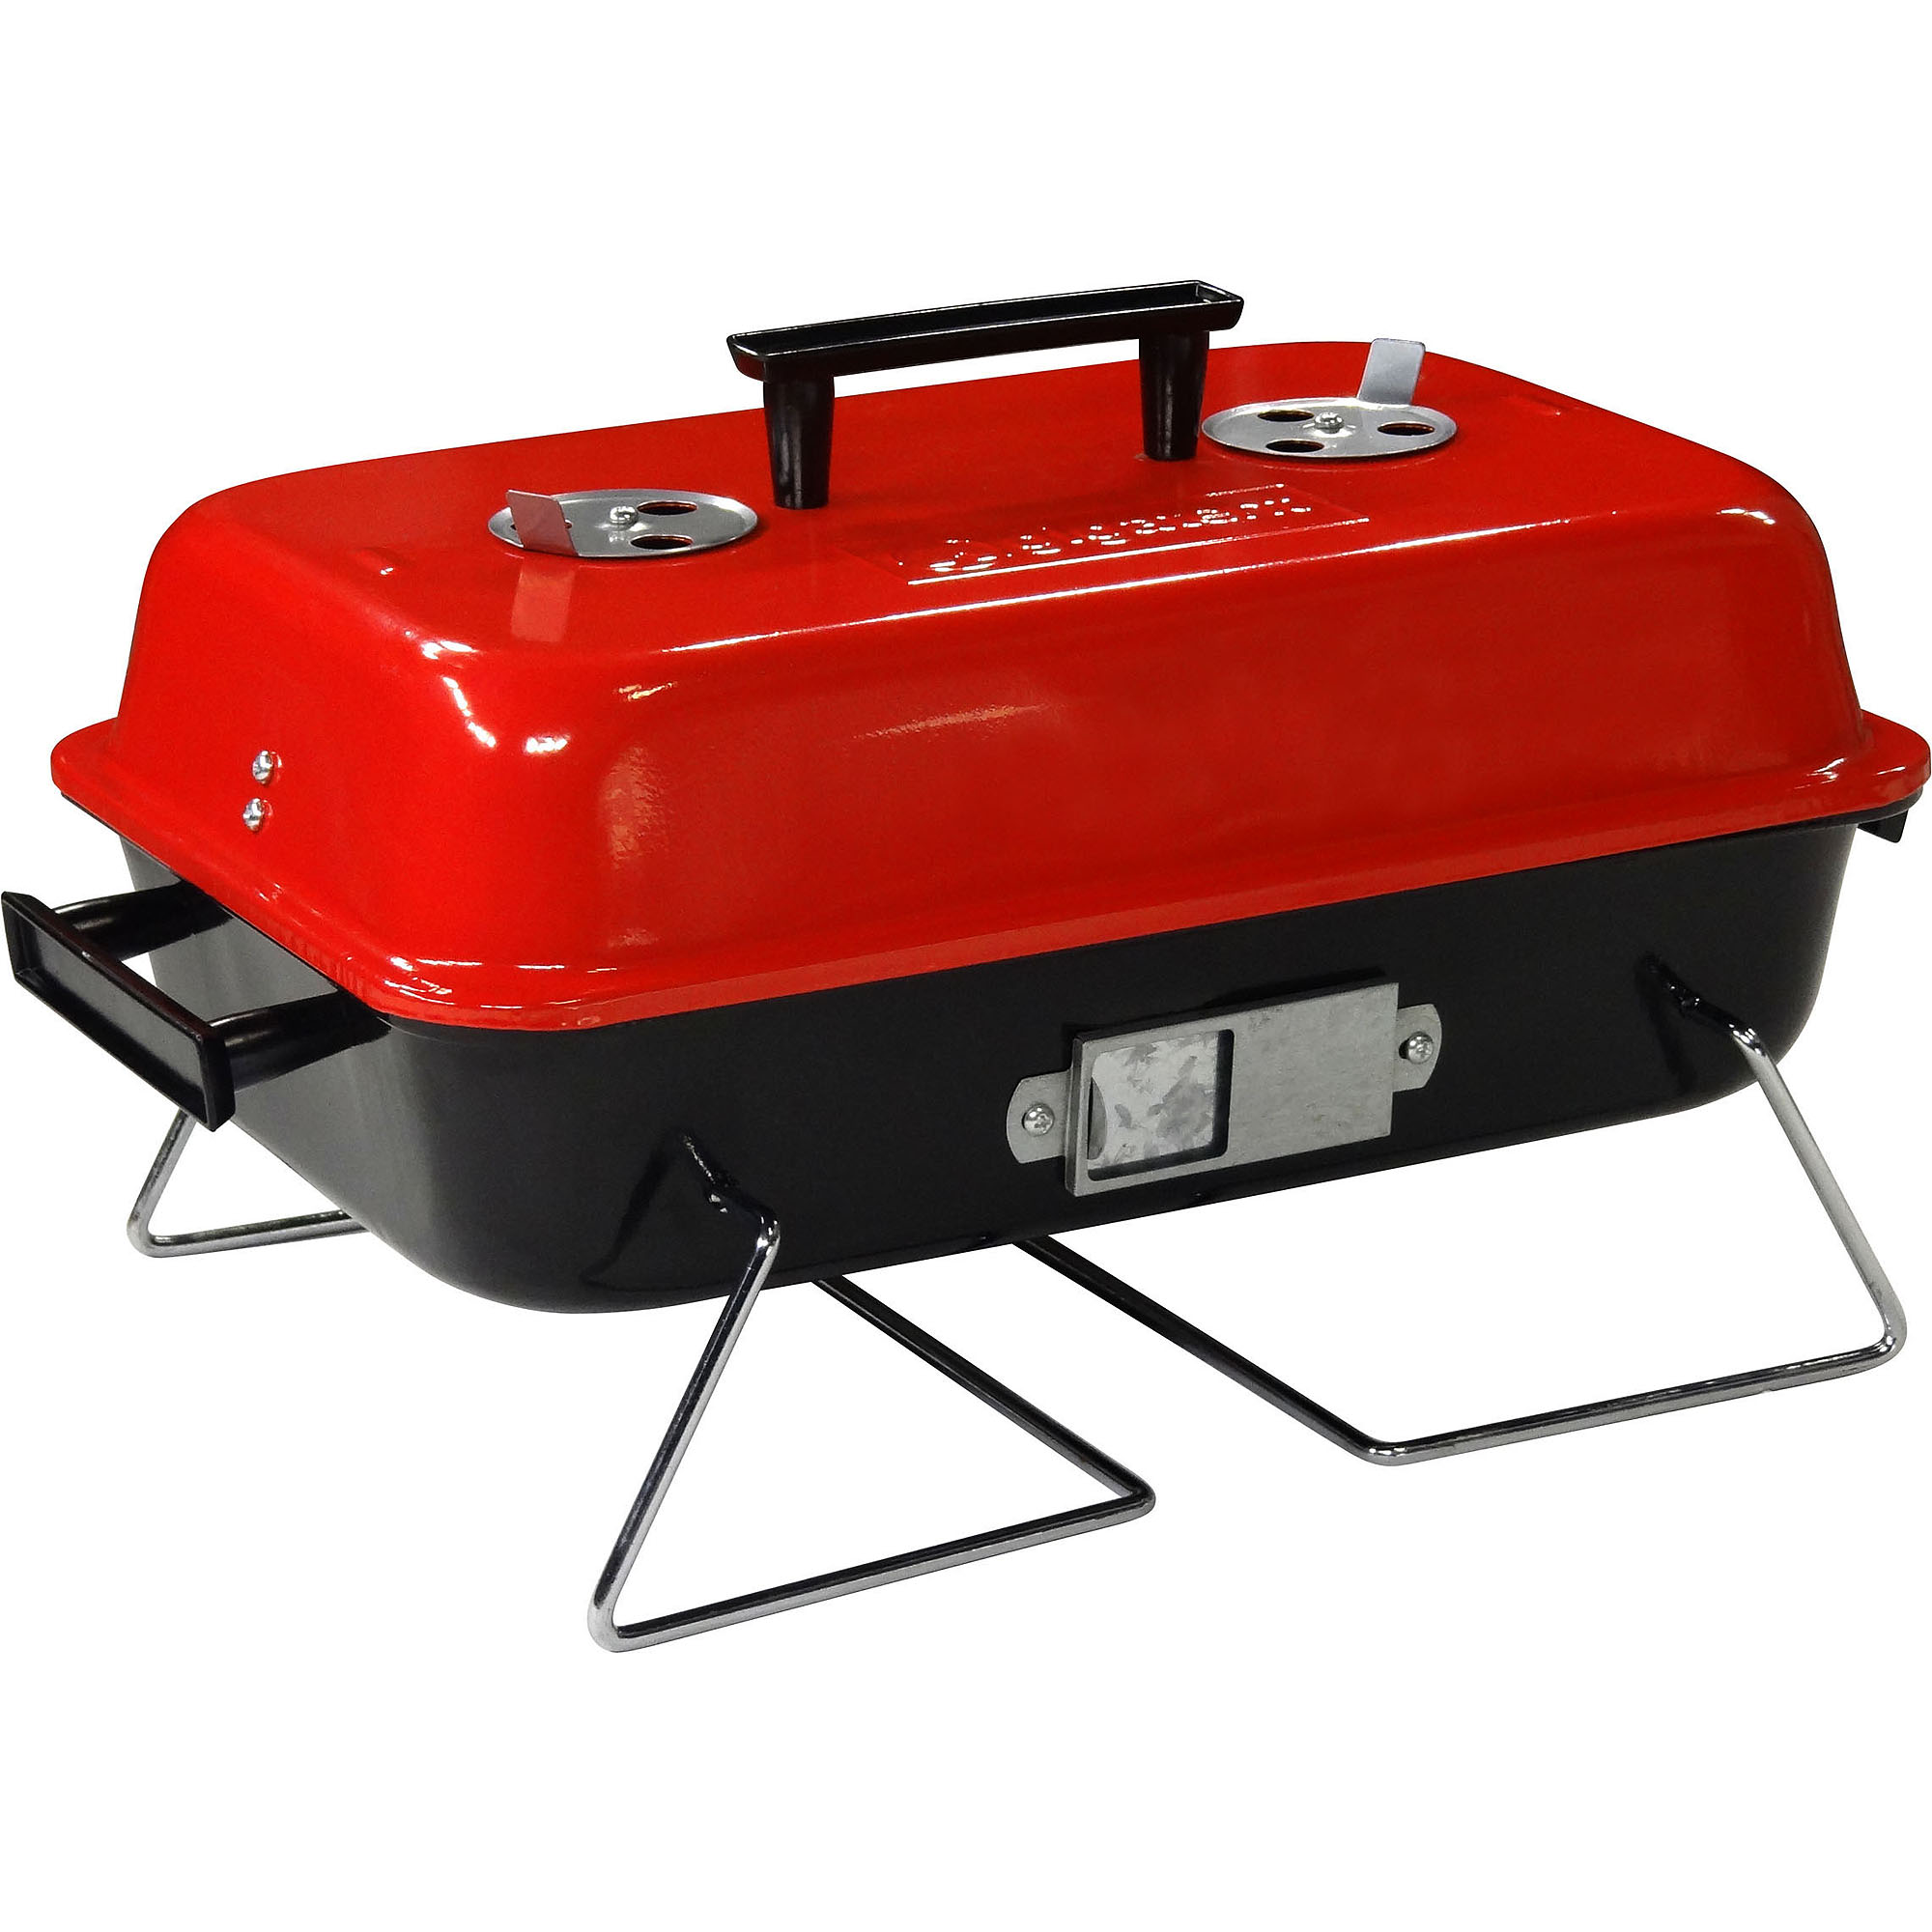 GigaTent Kobe Portable Charcoal Grill